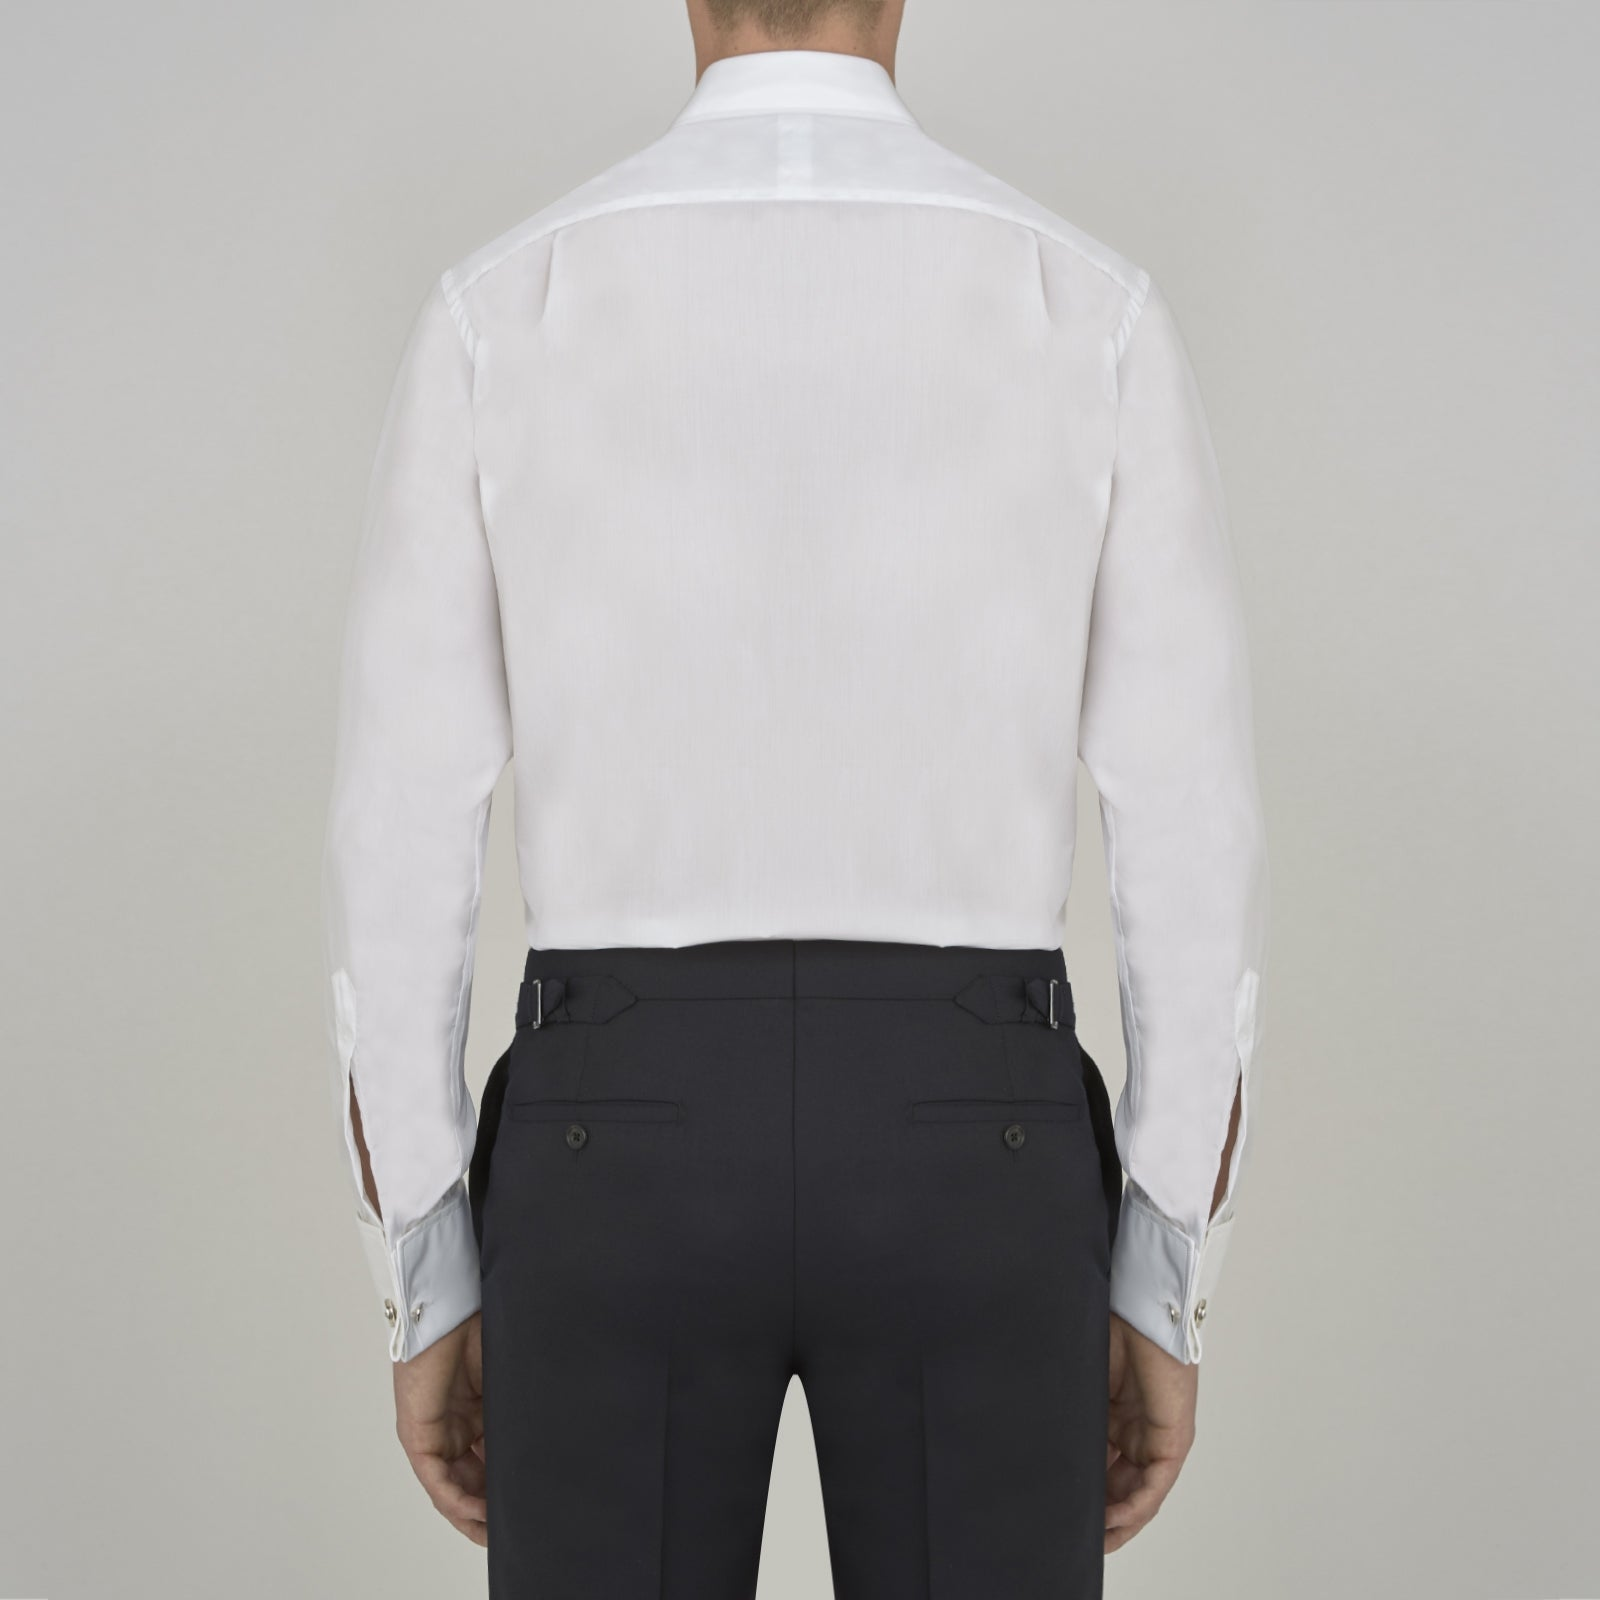 Two-Fold 200 White Cotton Shirt with T&A Collar and Double Cuffs